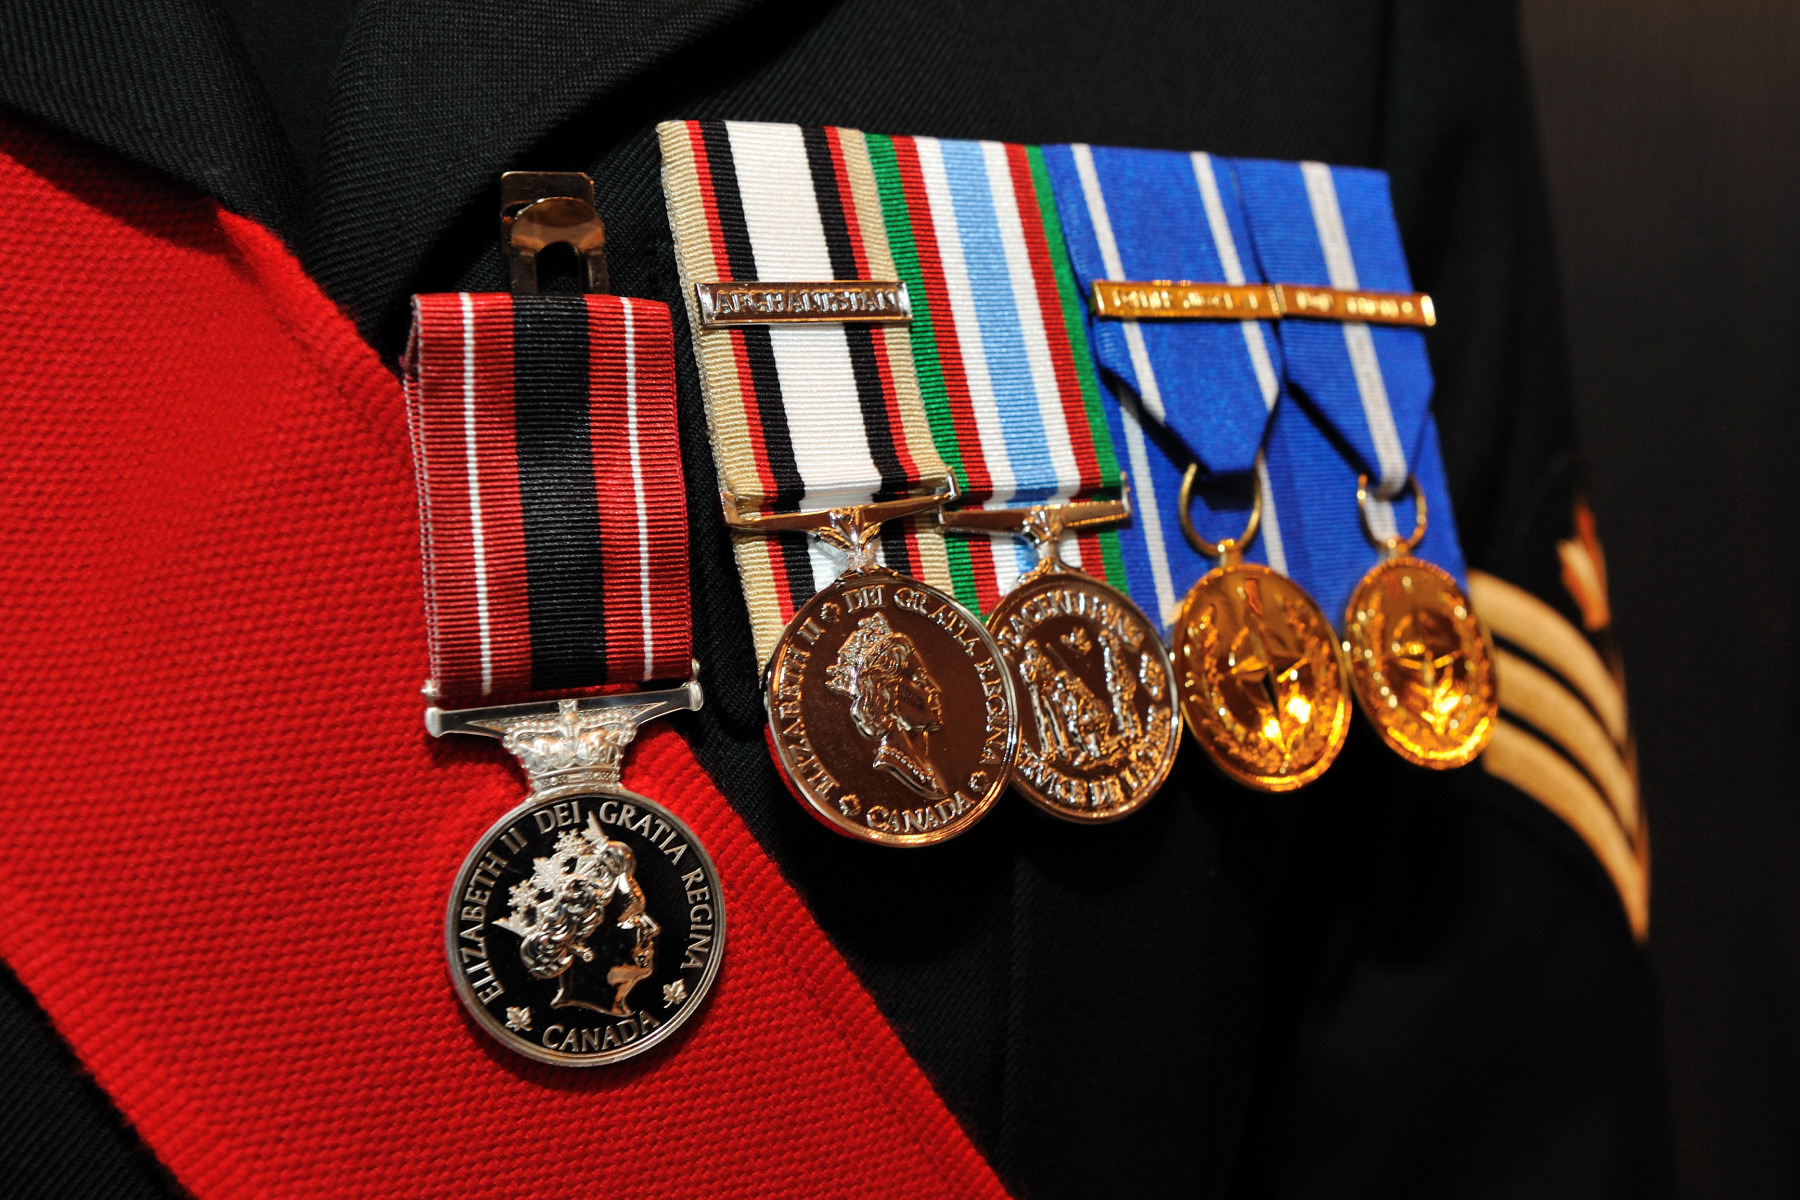 The Sacrifice Medal was created to provide a lasting form of recognition for the members of the Canadian Forces and those who work with them who have been wounded or killed by hostile action and to those who died as a result of service.